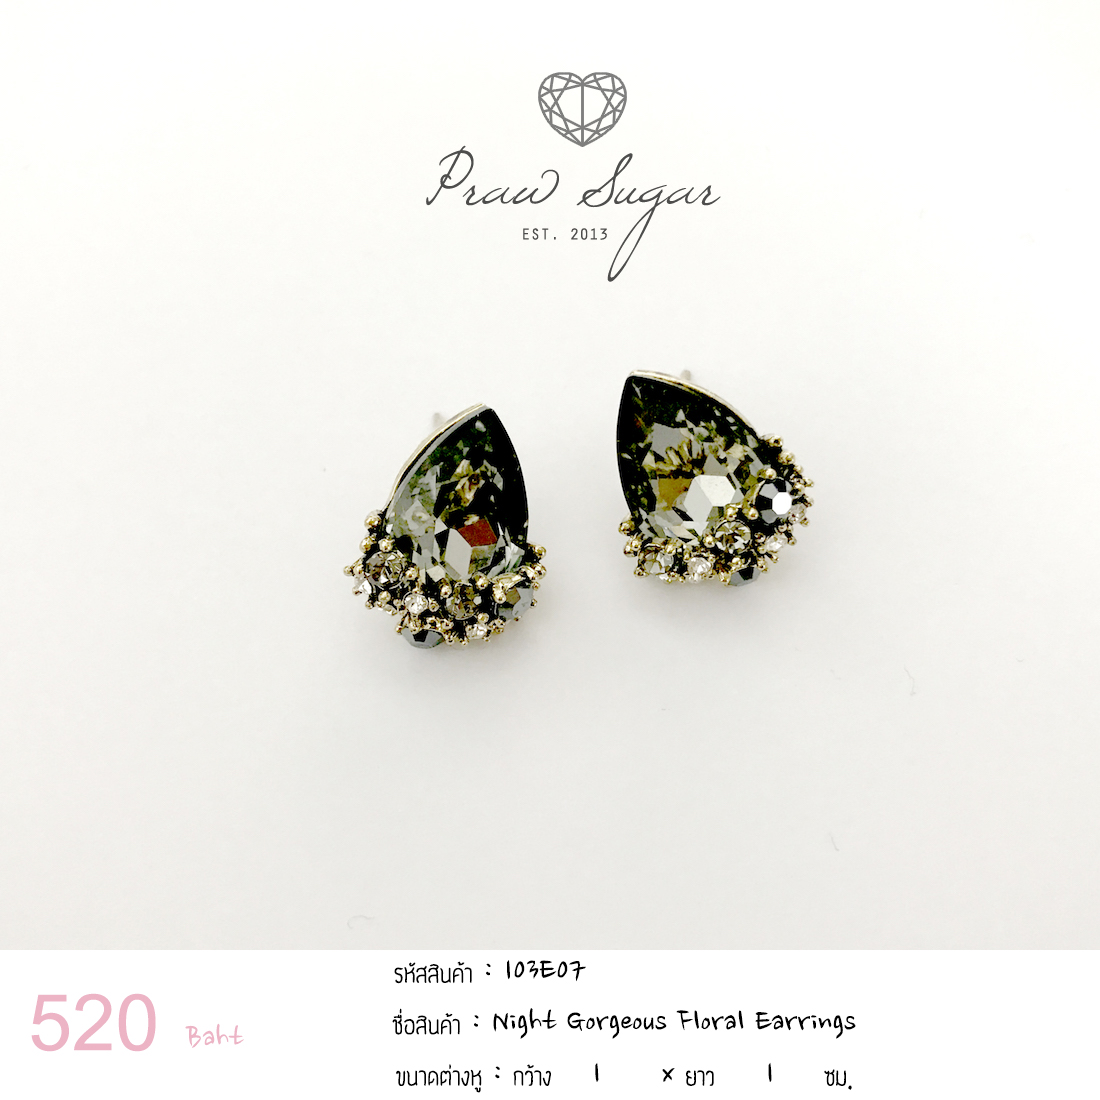 Night Gorgeous Floral Earrings